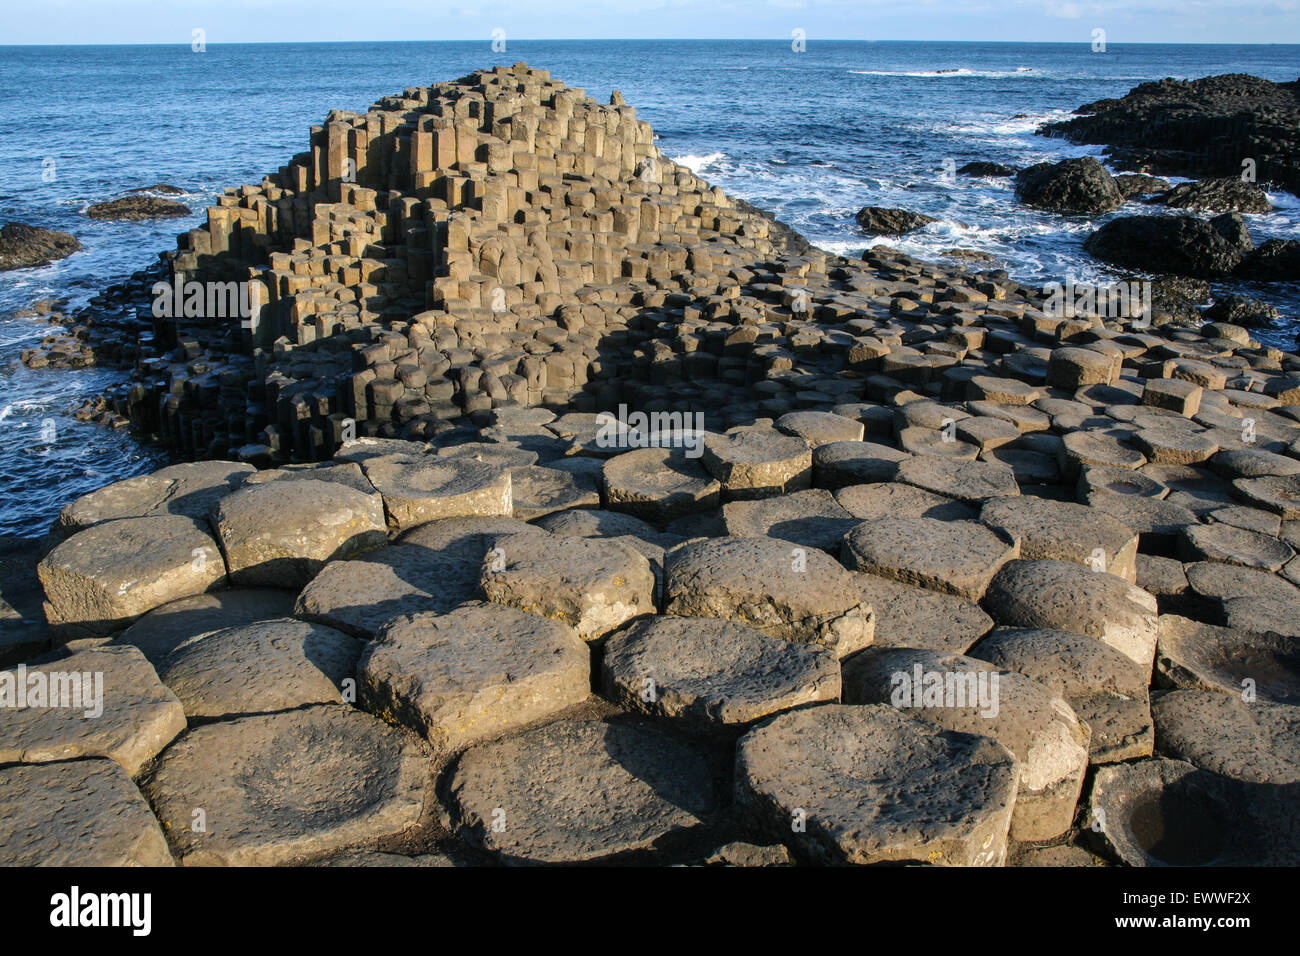 The lunar-like landscape of Giant's Causeway. The Causway is a geological freak, caused by volcanic eruptions - Stock Image